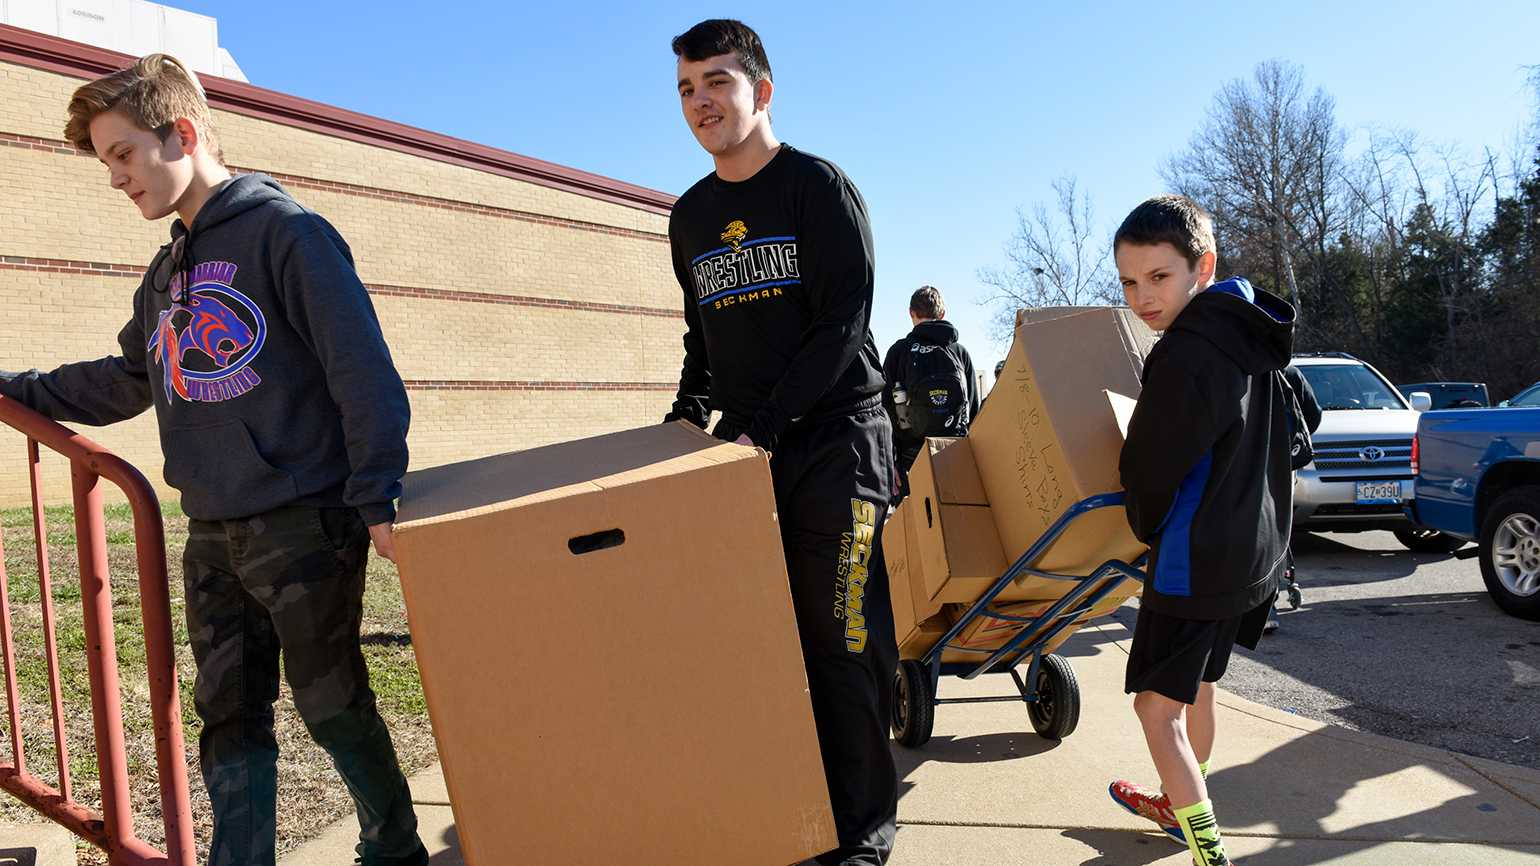 Donations are collected by students and volunteers at Fox High School in Arnold, Missouri, for flood victims.